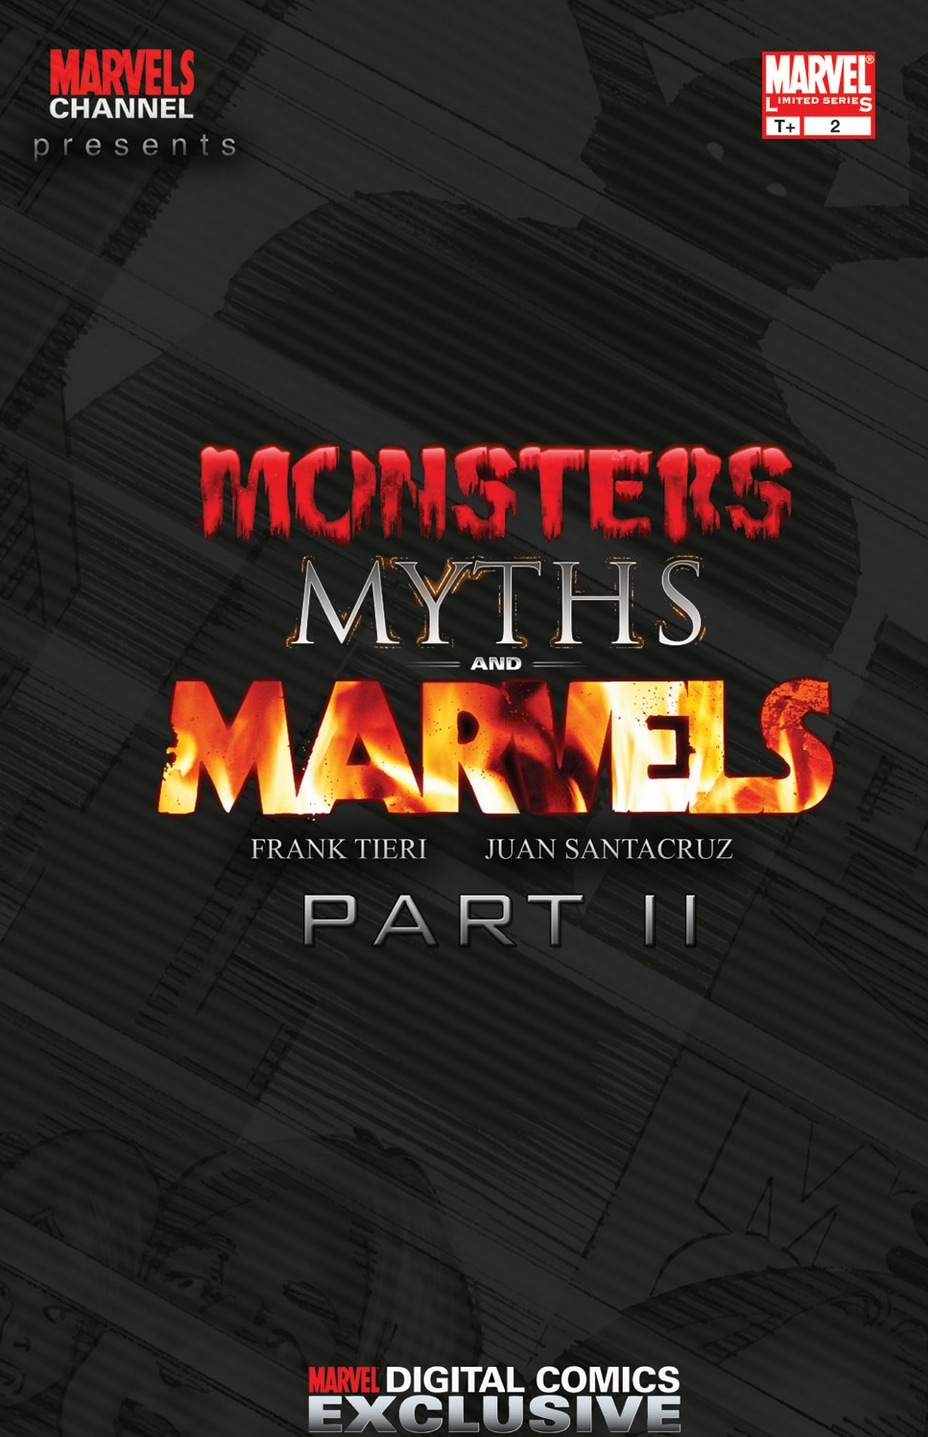 The Marvels Channel: Monsters, Myths, and Marvels (2008) #2